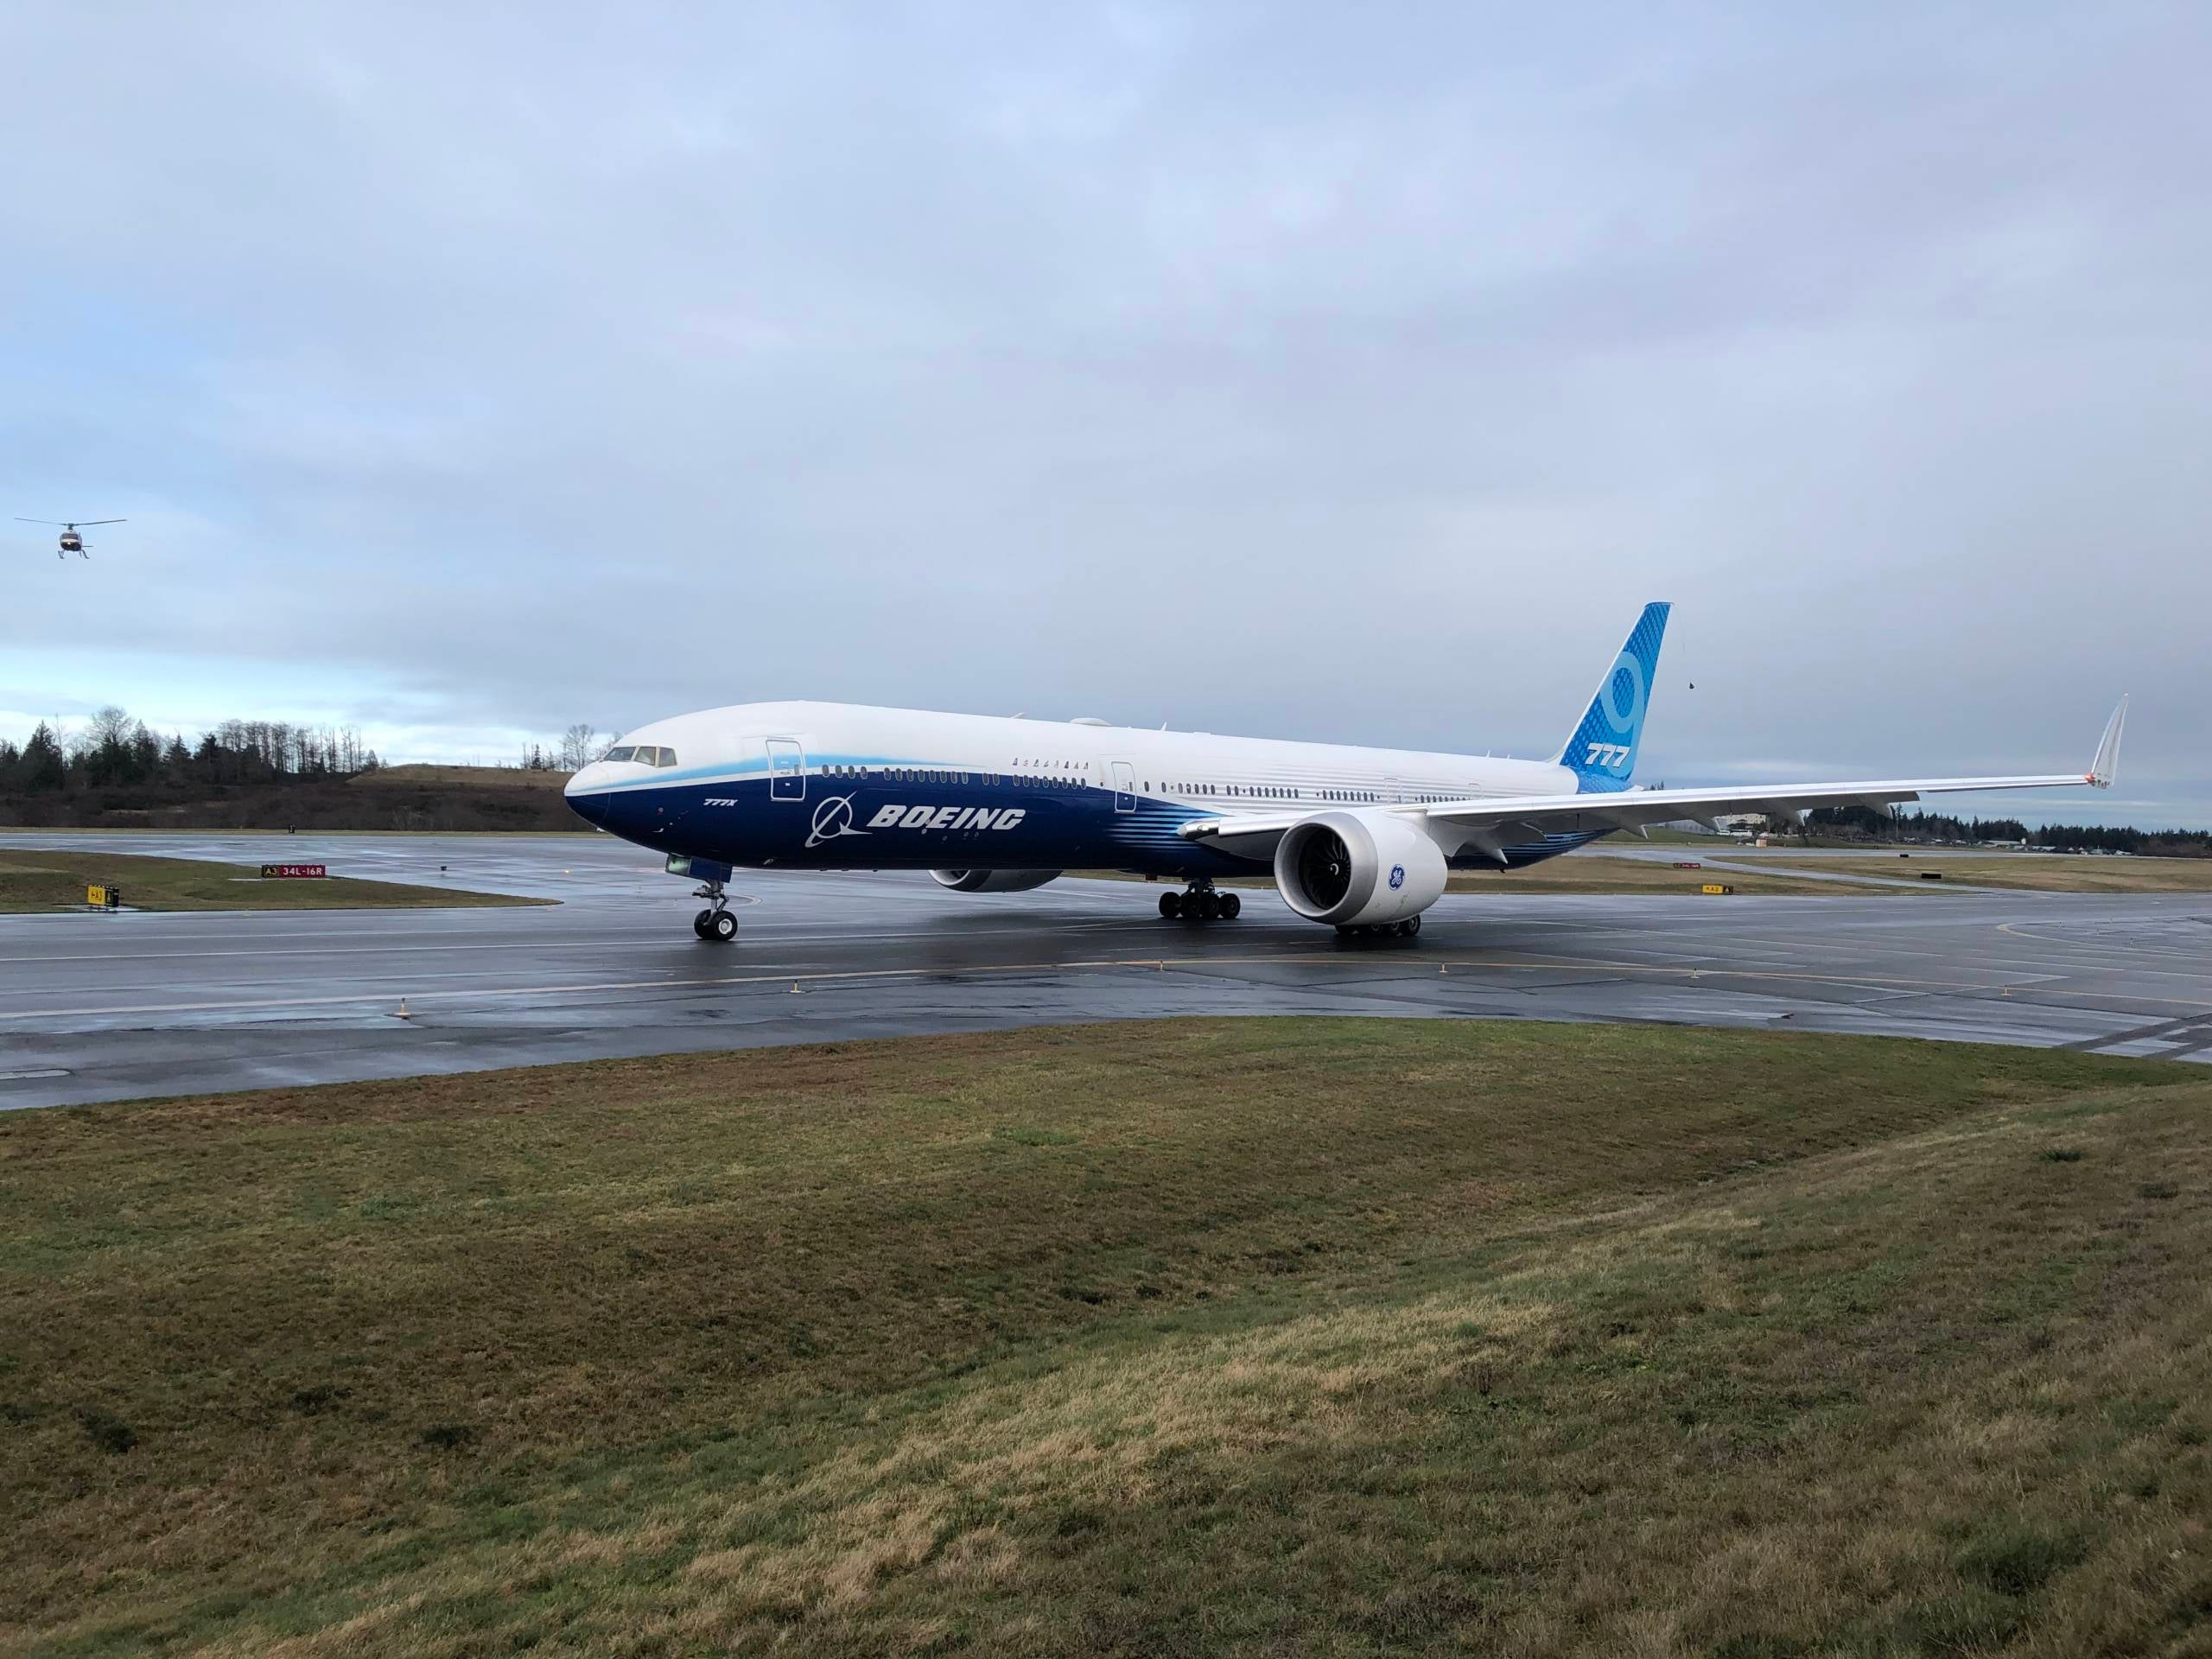 Boeing's 777X has completed its maiden flight